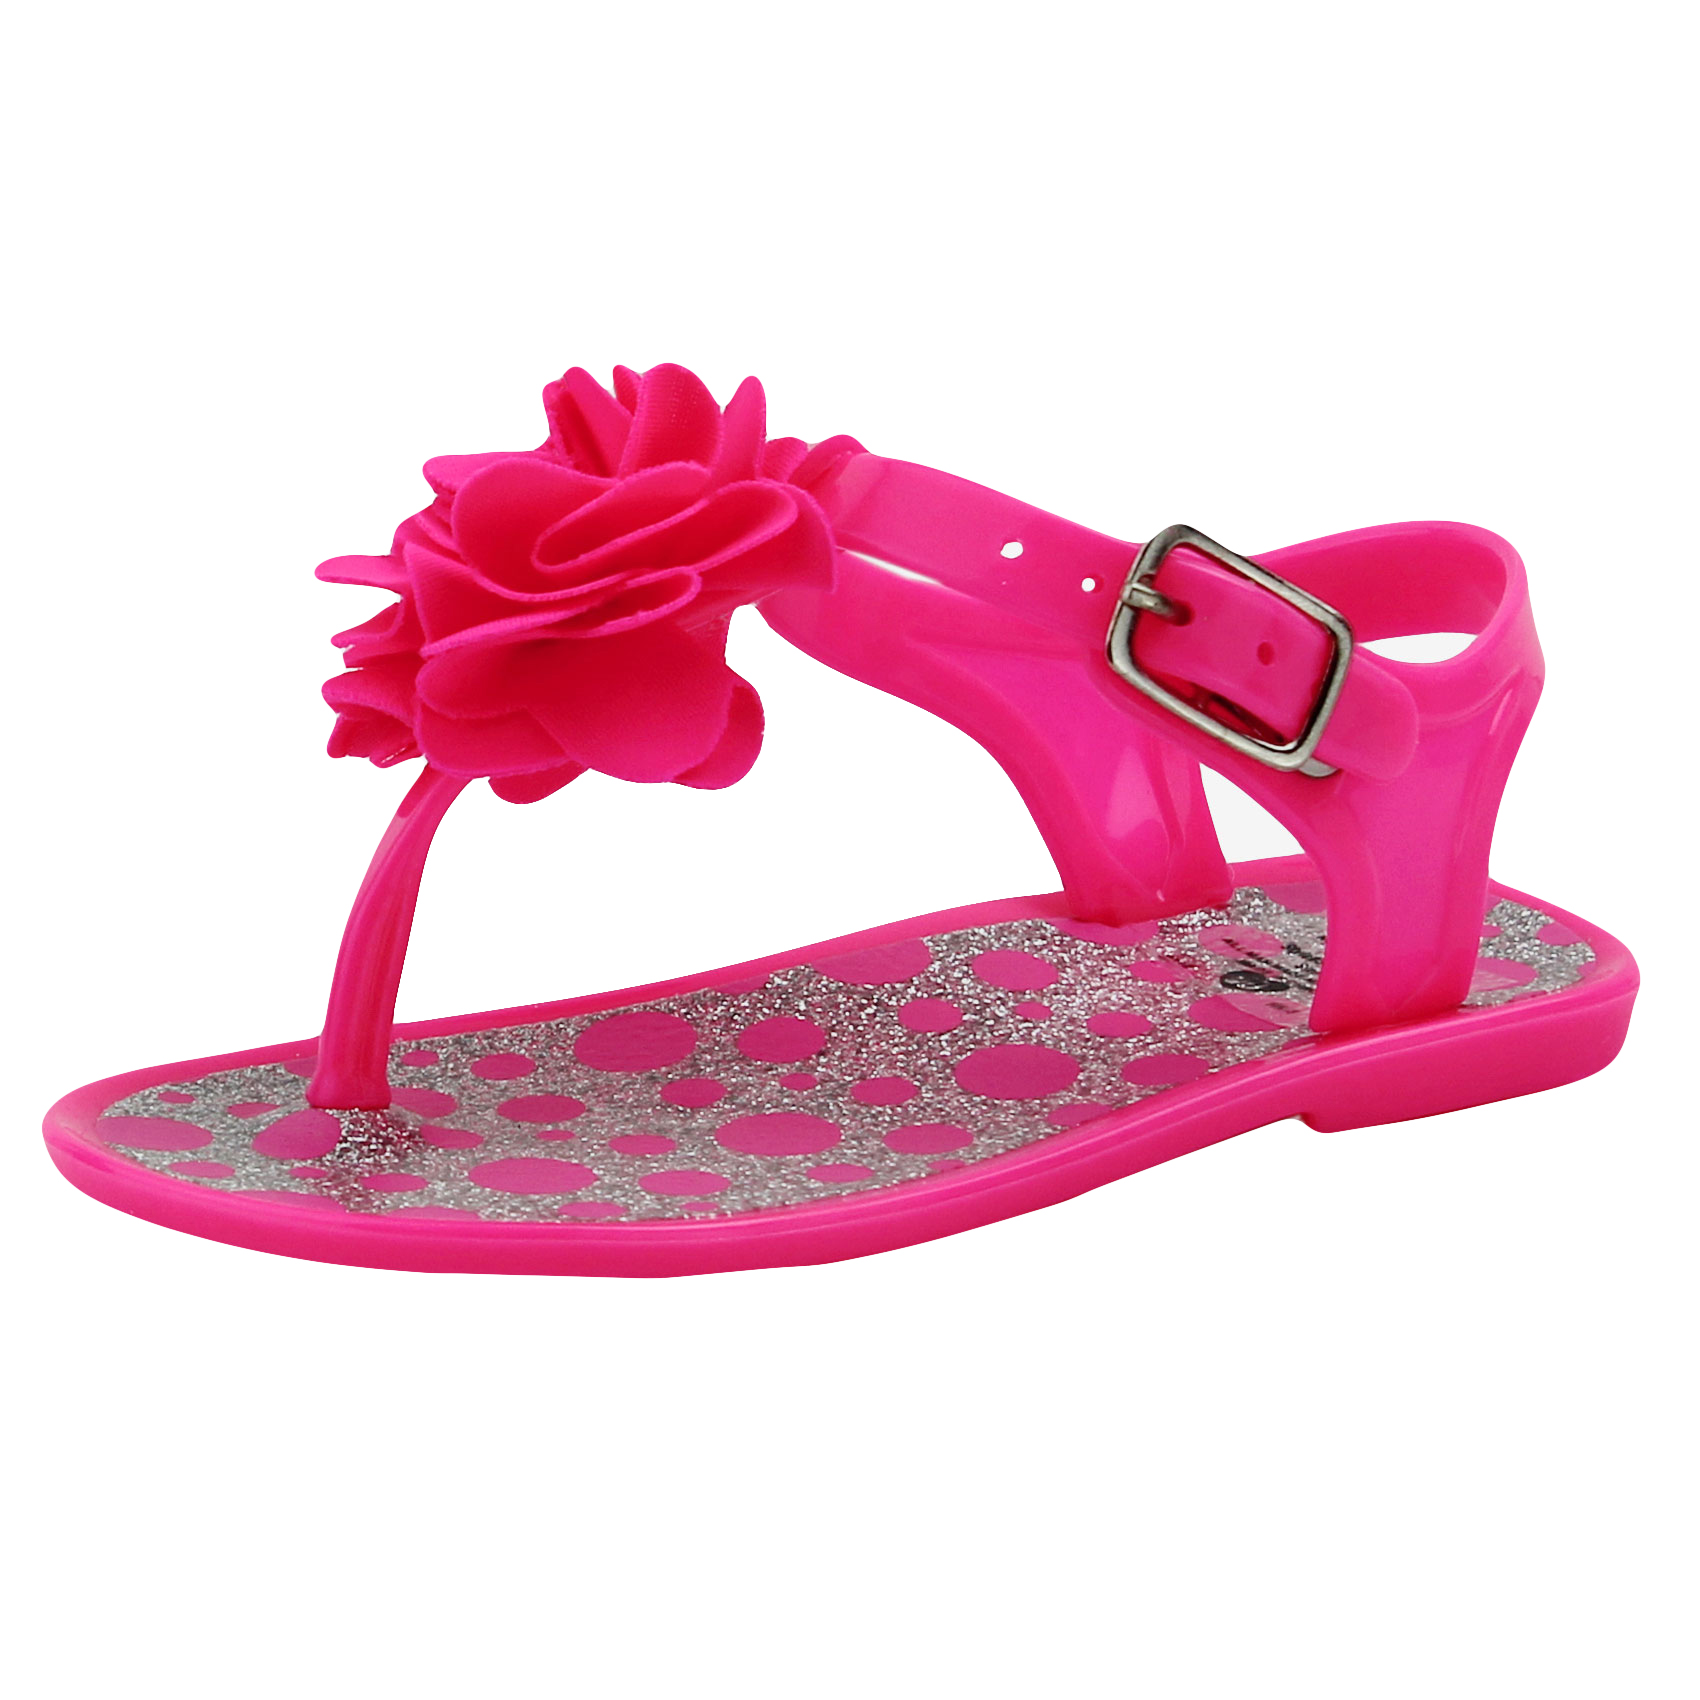 Stepping Stones Baby Girls Hot Pink Polka Dot Glitter Flower Thong Sandal / Jelly Sandals with Backs-Size 6 Infant Toddler Flip Flops For Causal or Dress